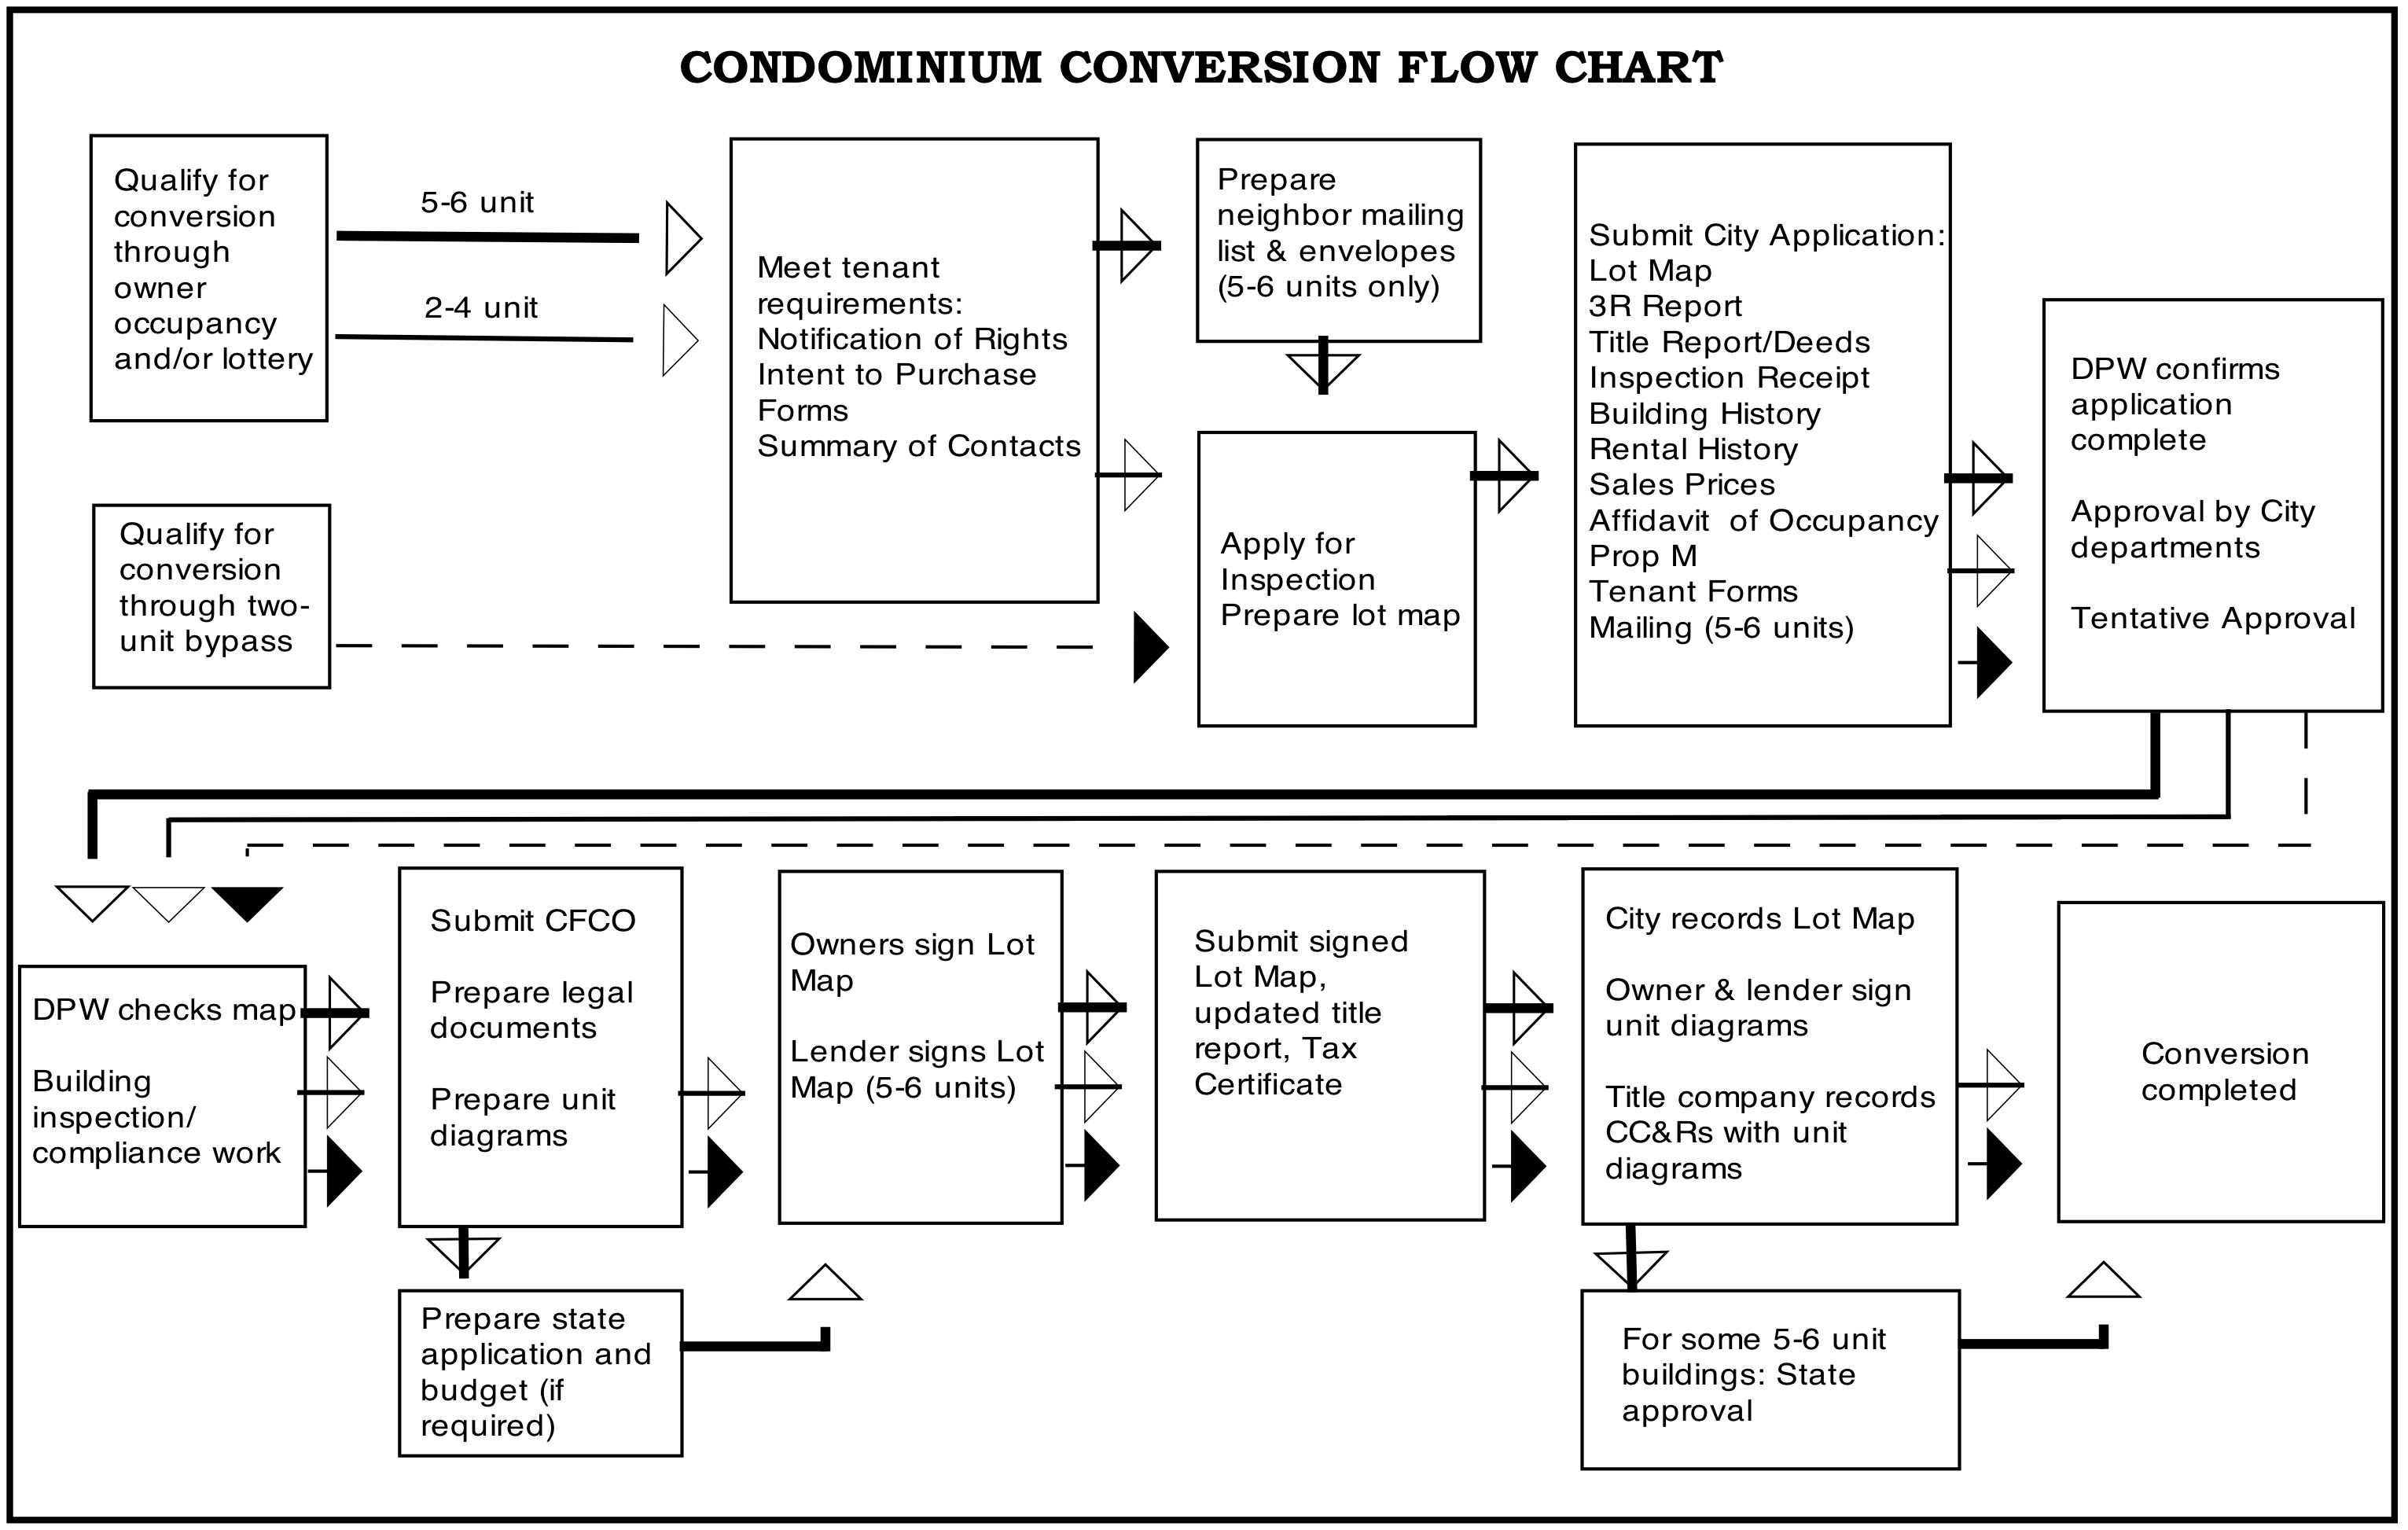 San francisco condominium conversion eligibility and process newcondoflowchart2 nvjuhfo Gallery